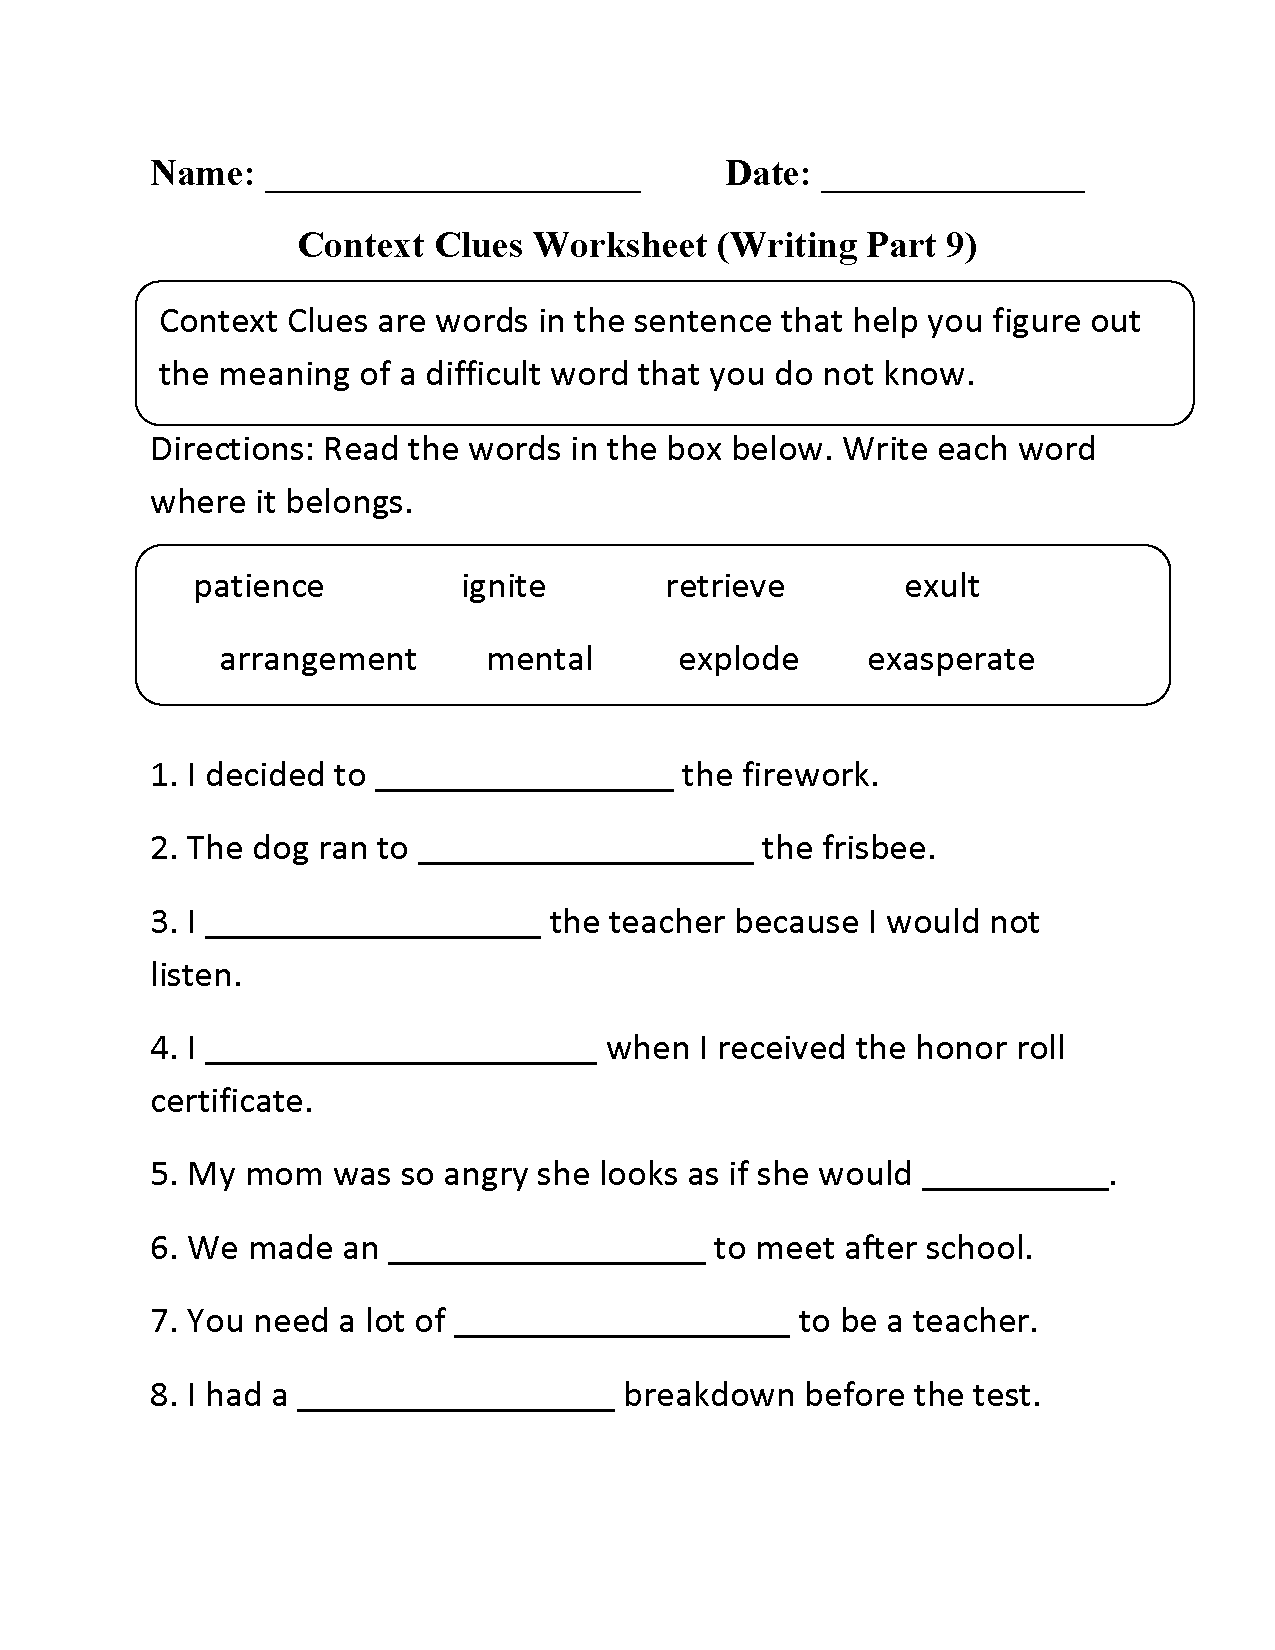 Worksheets Context Clues Worksheets 4th Grade context clues worksheet writing part 9 intermediate language intermediate